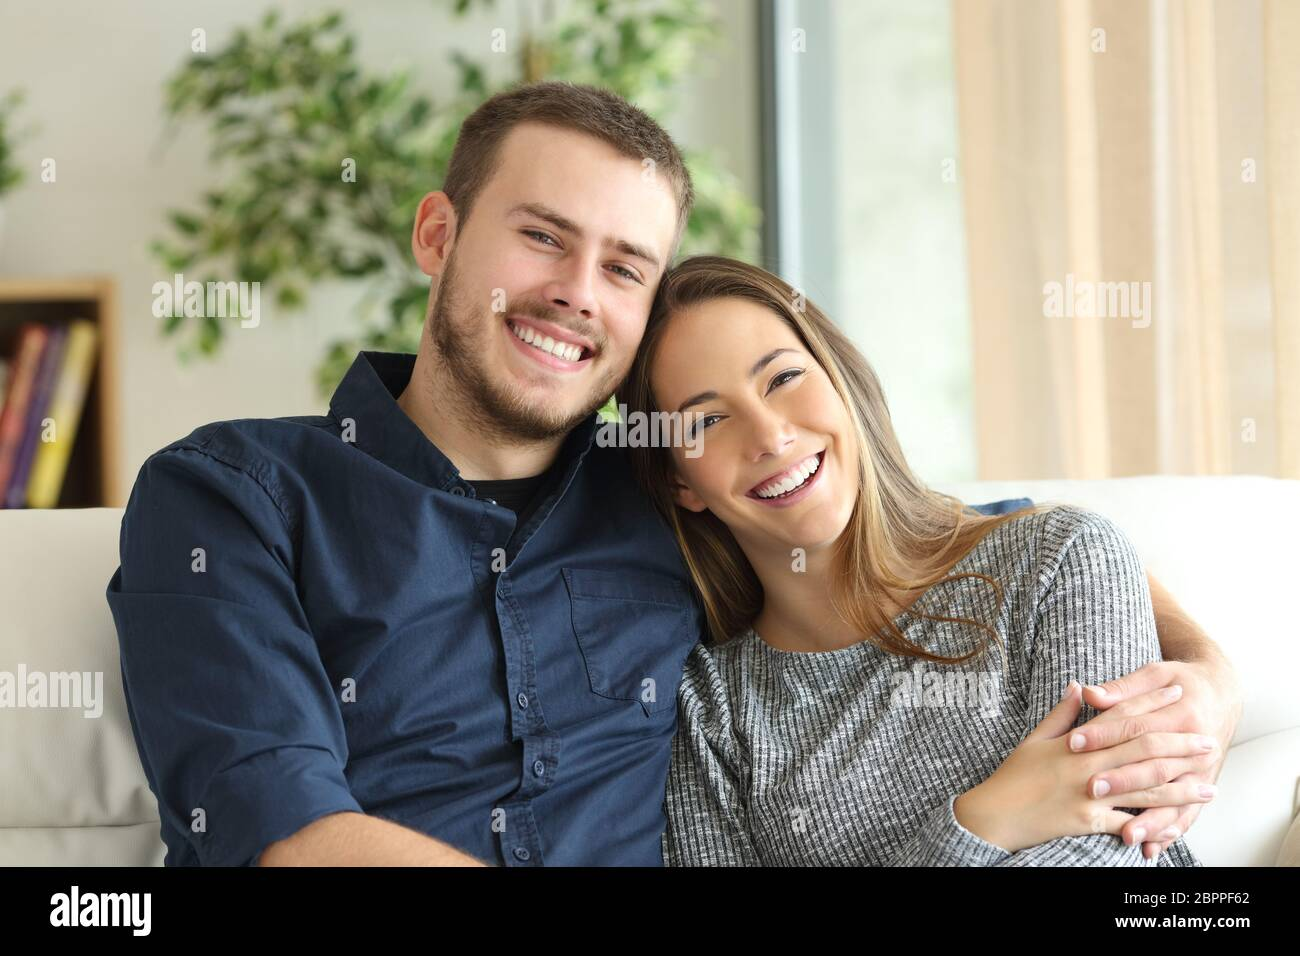 Front View Portrait Of A Happy Couple Posing And Looking At Camera Sitting On A Couch In The Living Room At Home Stock Photo Alamy